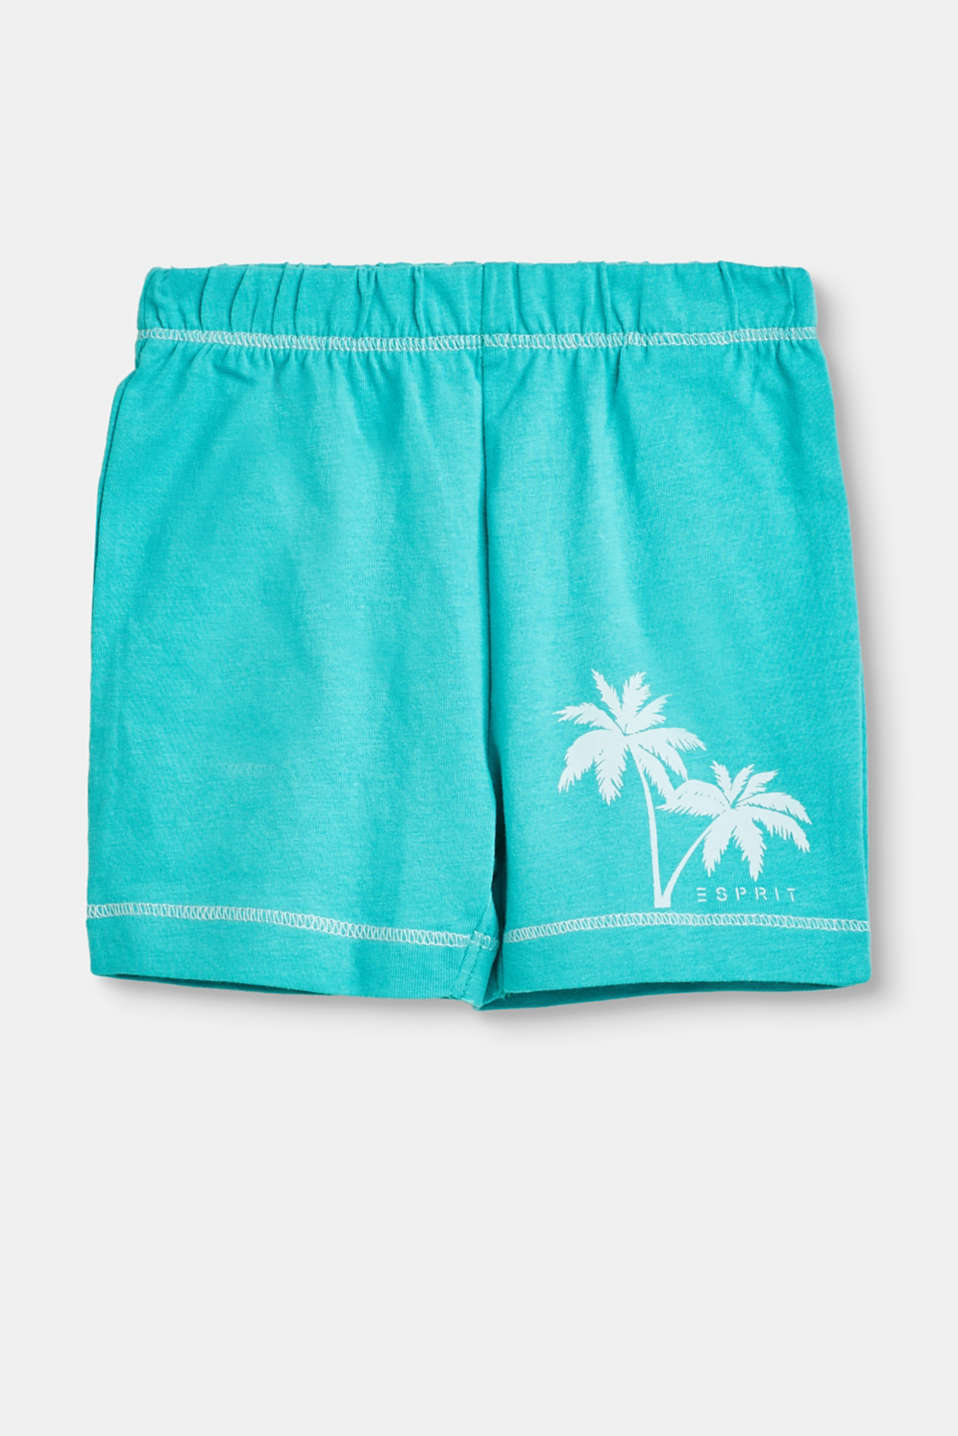 A soft summer basic for tiny tots! Little ones feel nice and comfy in these adorable shorts.